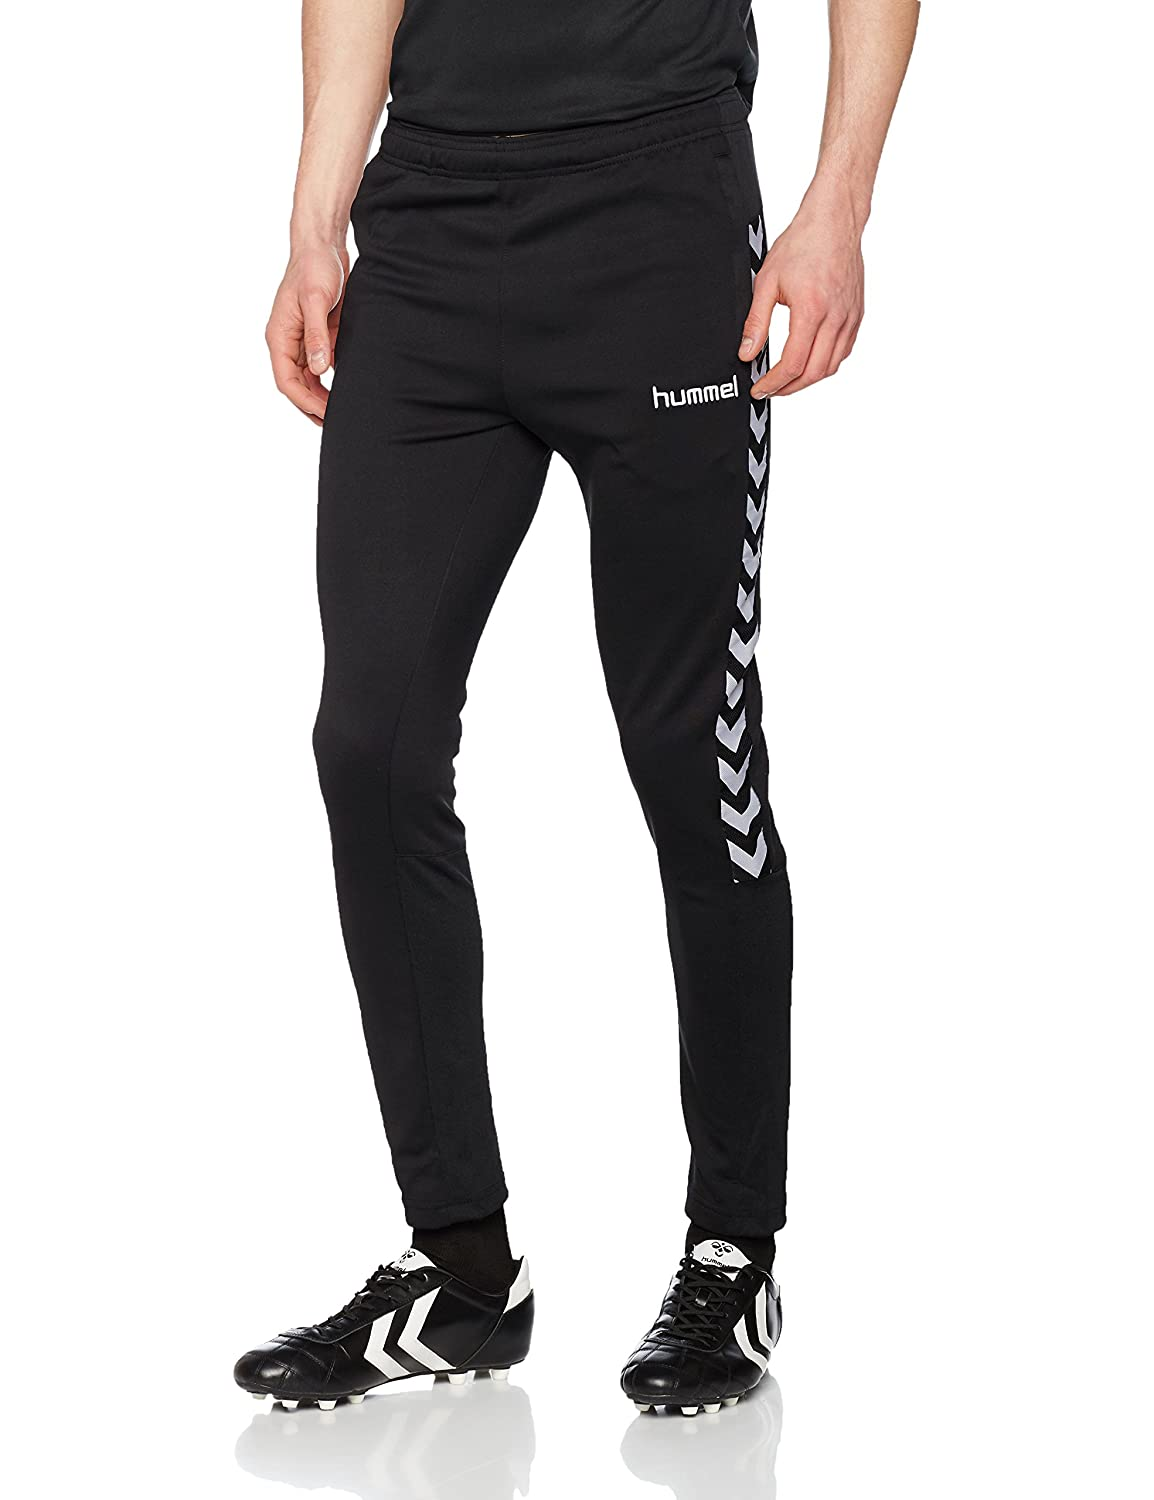 4a13671c47f Hummel men's authentic charge football trousers, Men, Auth Charge Football  Pants: Amazon.co.uk: Sports & Outdoors